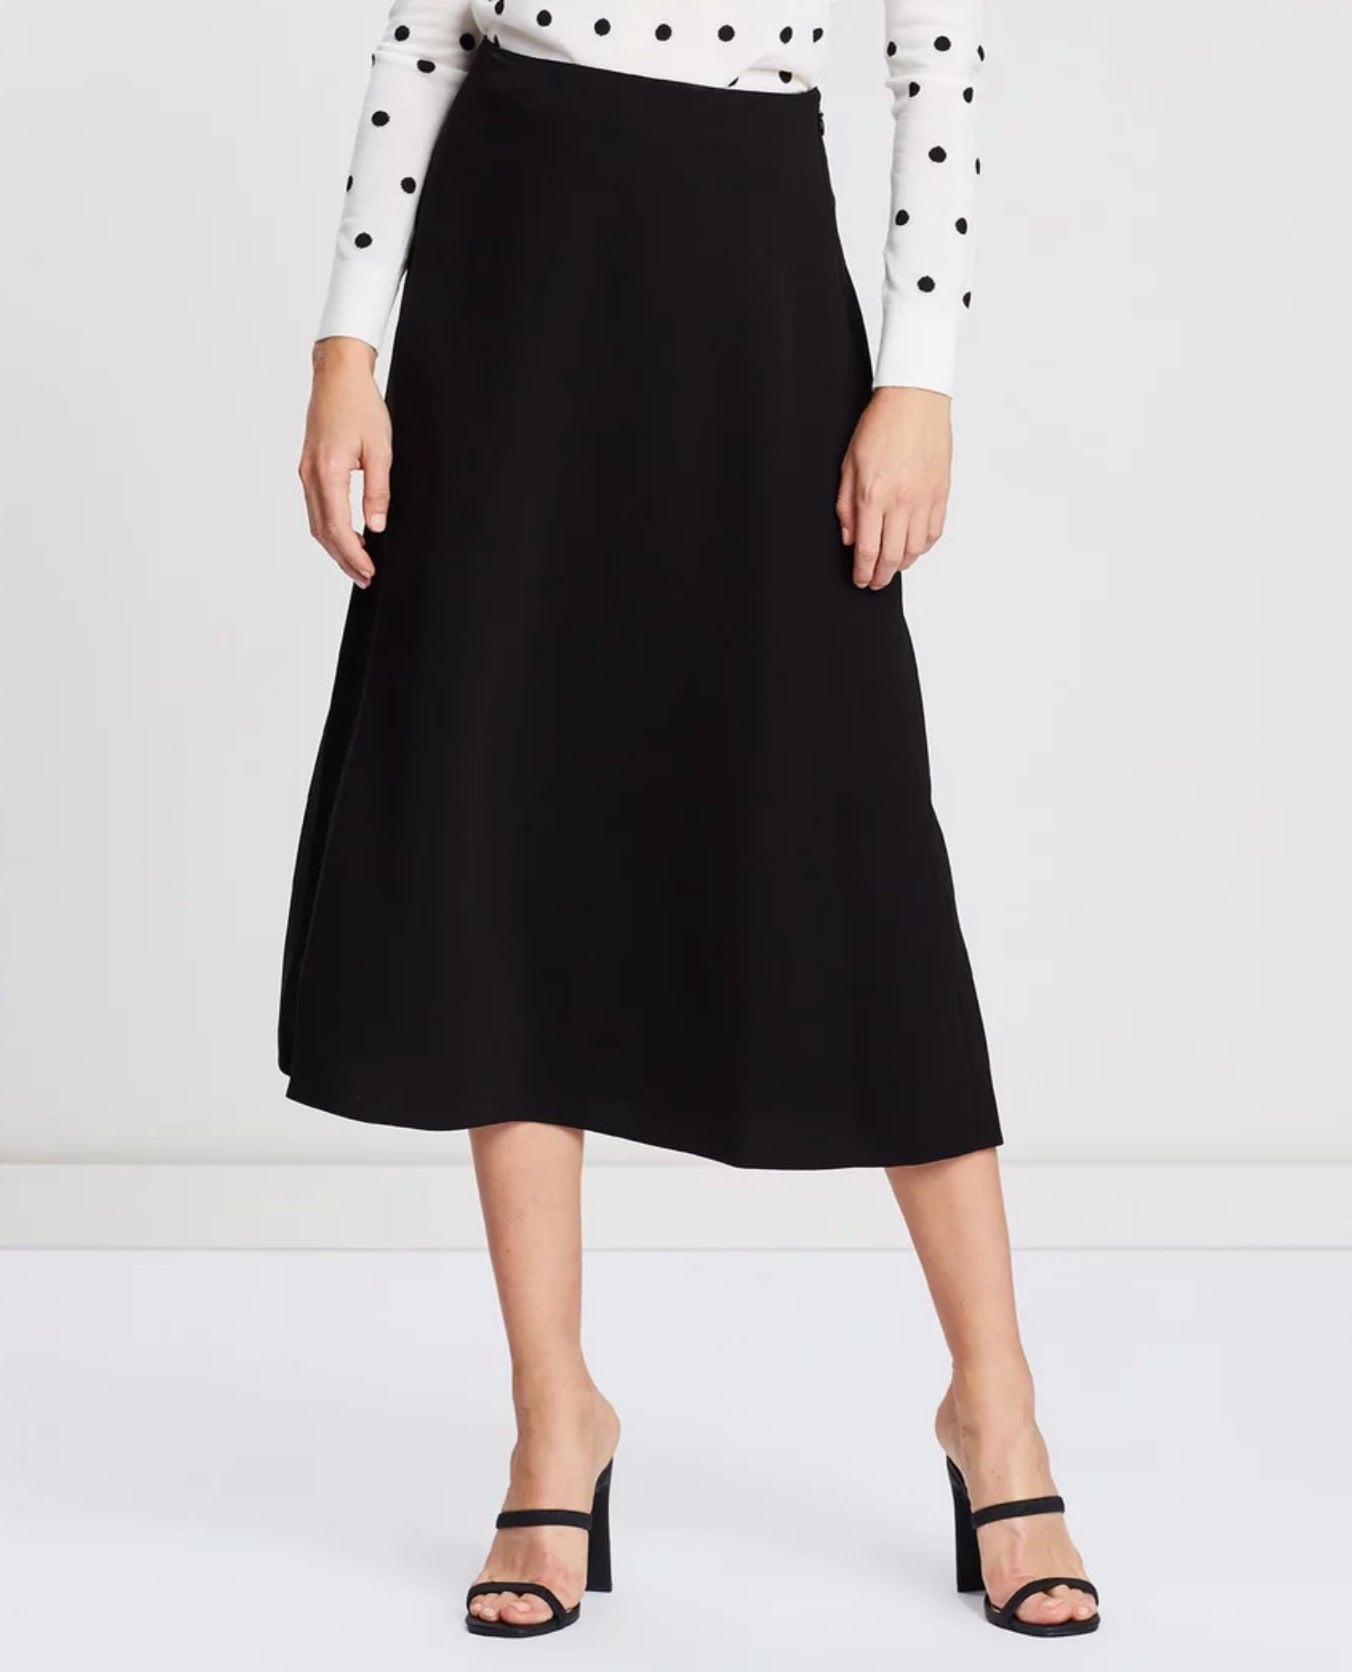 Theory - Black midi skirt capsule wardrobe collection